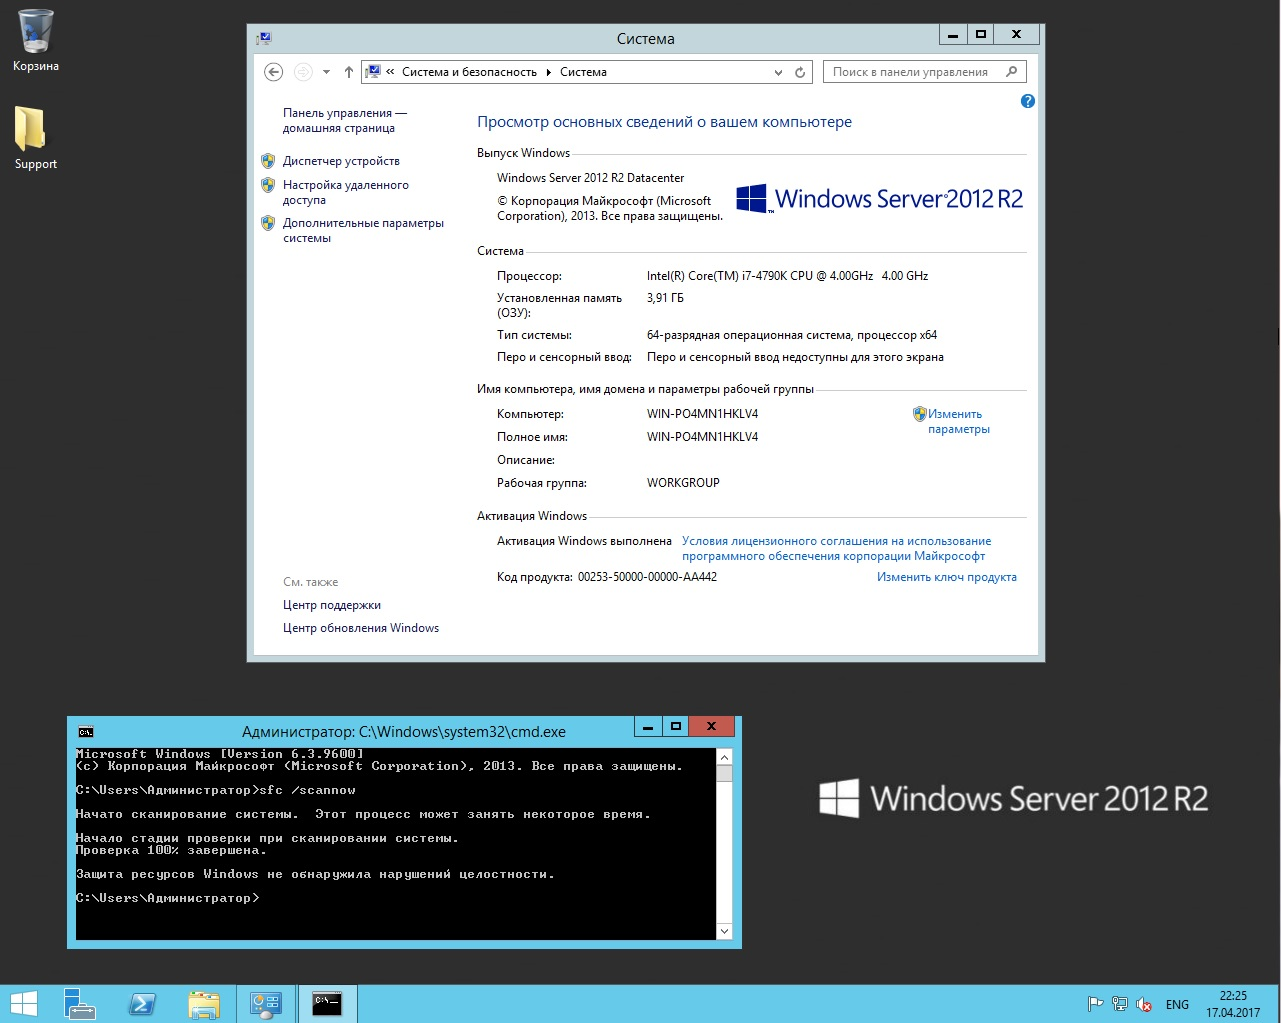 Microsoft windows server 2017 r2 hpc enterprise suite zwtiso blues brothers biz